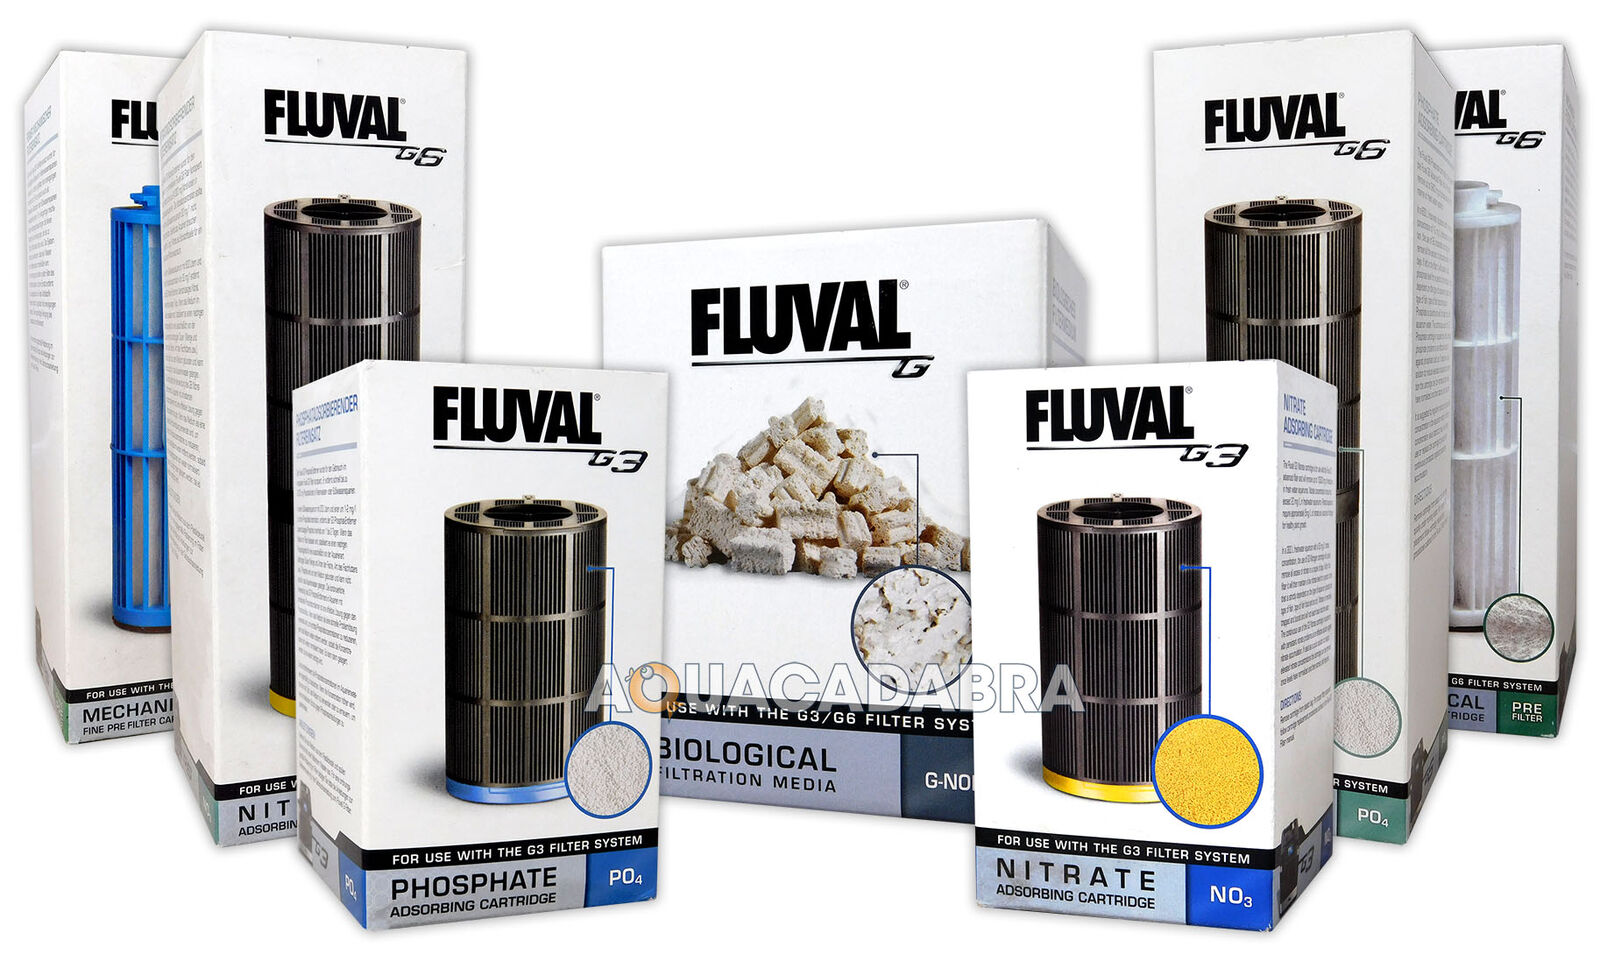 Fluval G3 G6 Filter Media Nitrate Phosphate Filtration Cartridge Tank Aquarium